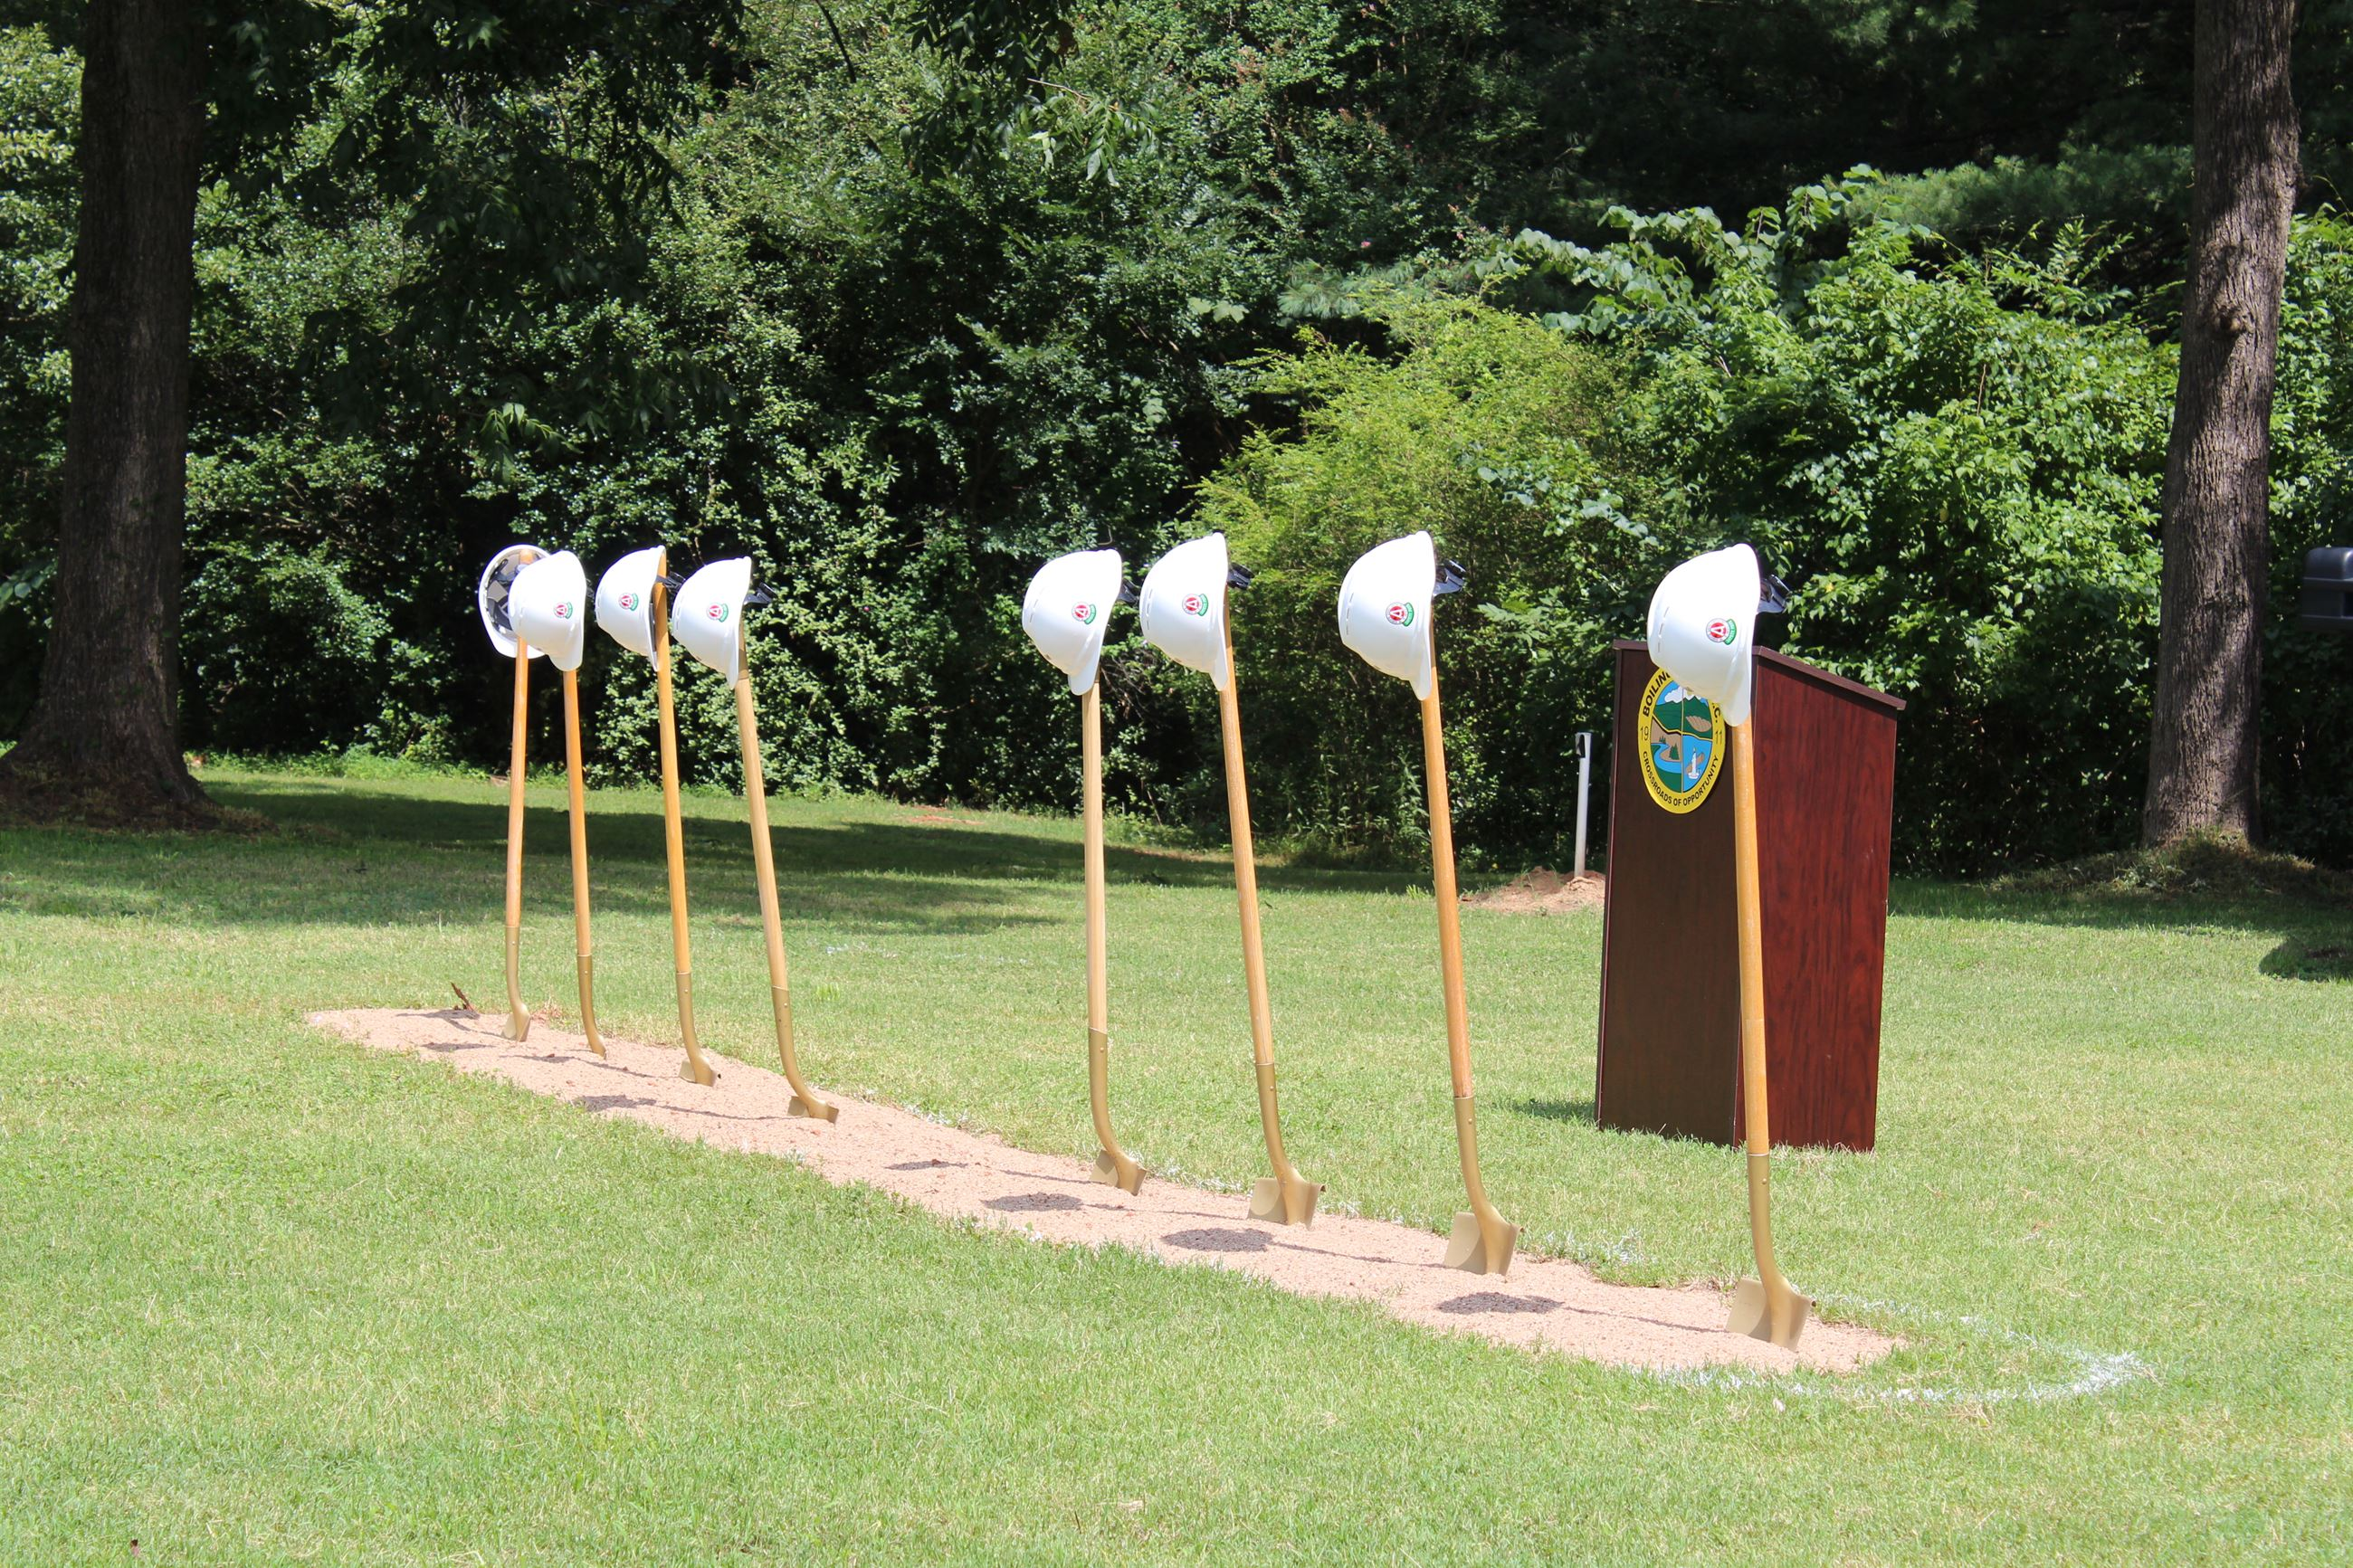 Row of golden shovels stuck in the ground.